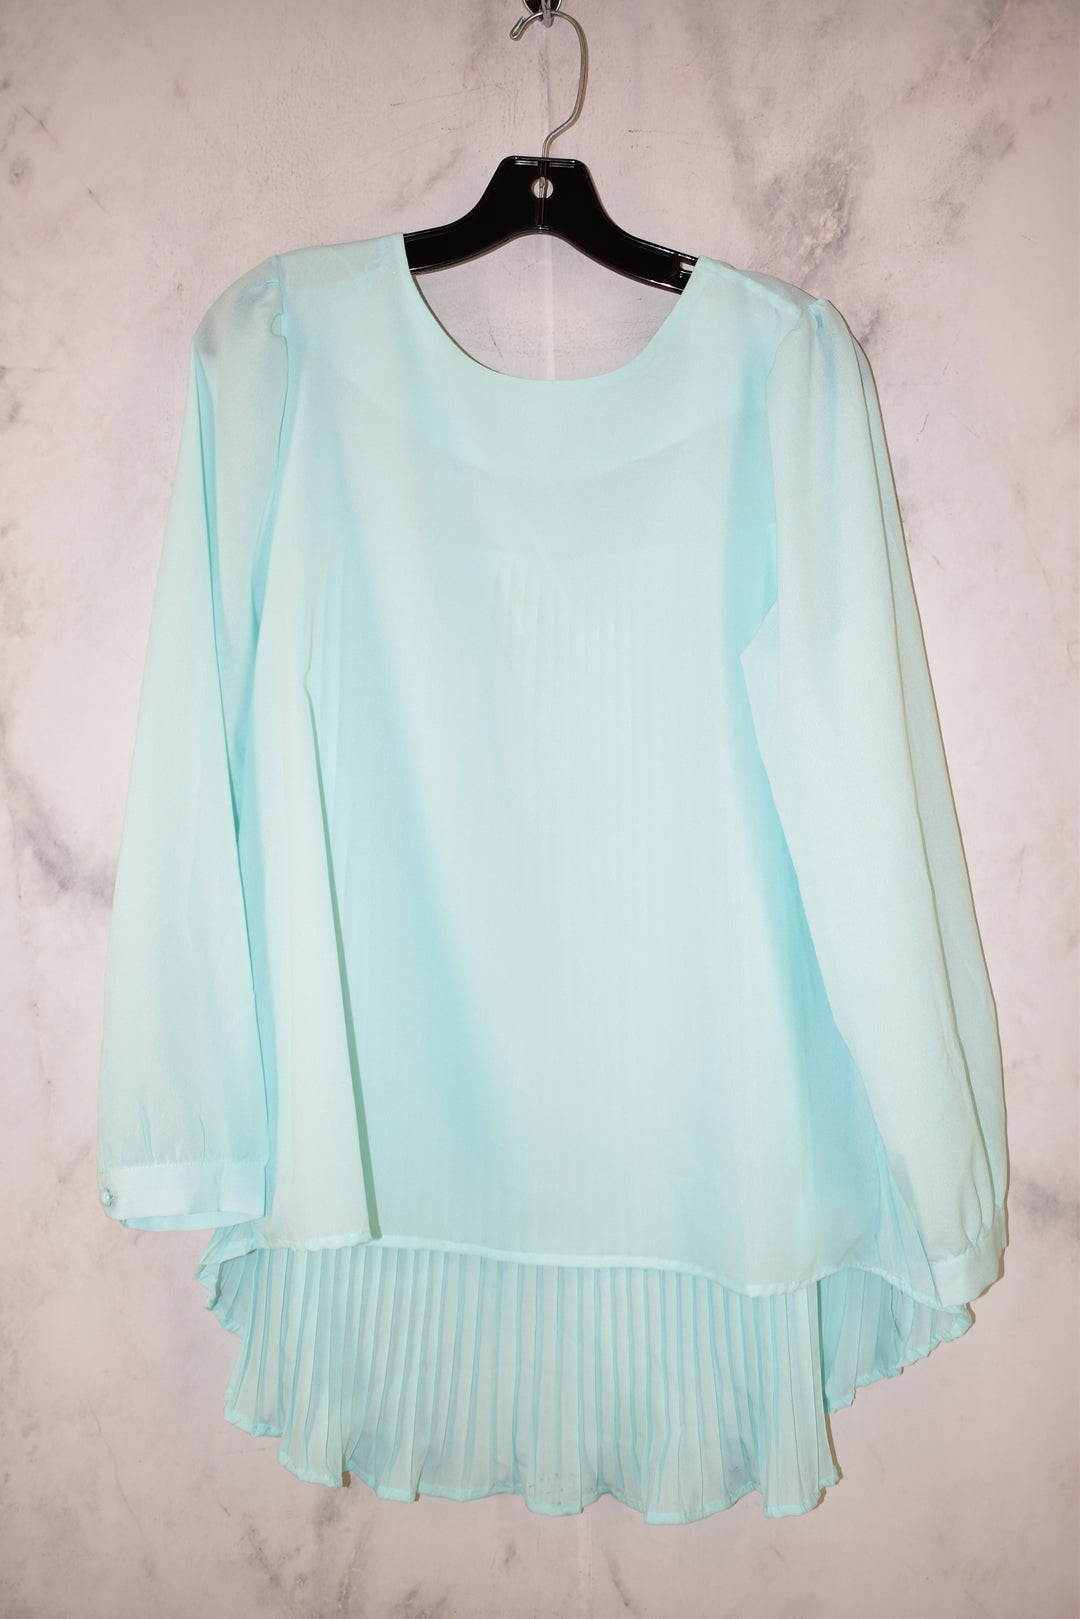 Primary Photo - BRAND: ZANZEA <BR>STYLE: TOP LONG SLEEVE <BR>COLOR: LIGHT BLUE <BR>SIZE: M <BR>SKU: 186-186179-12805